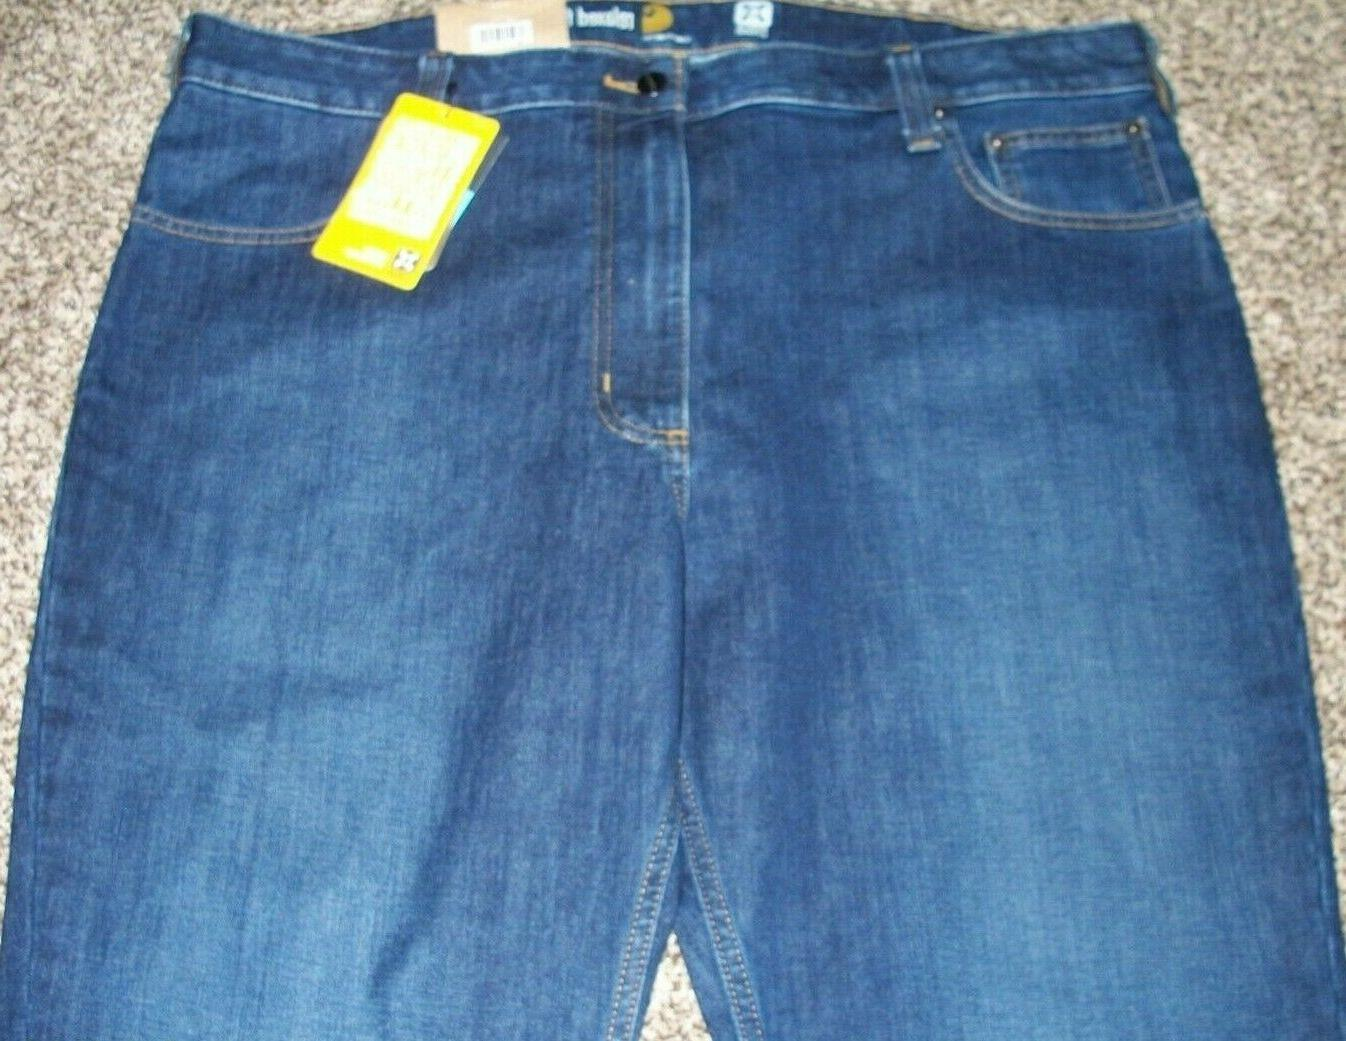 nwt 102632 lynnwood force extremes jeans relaxed